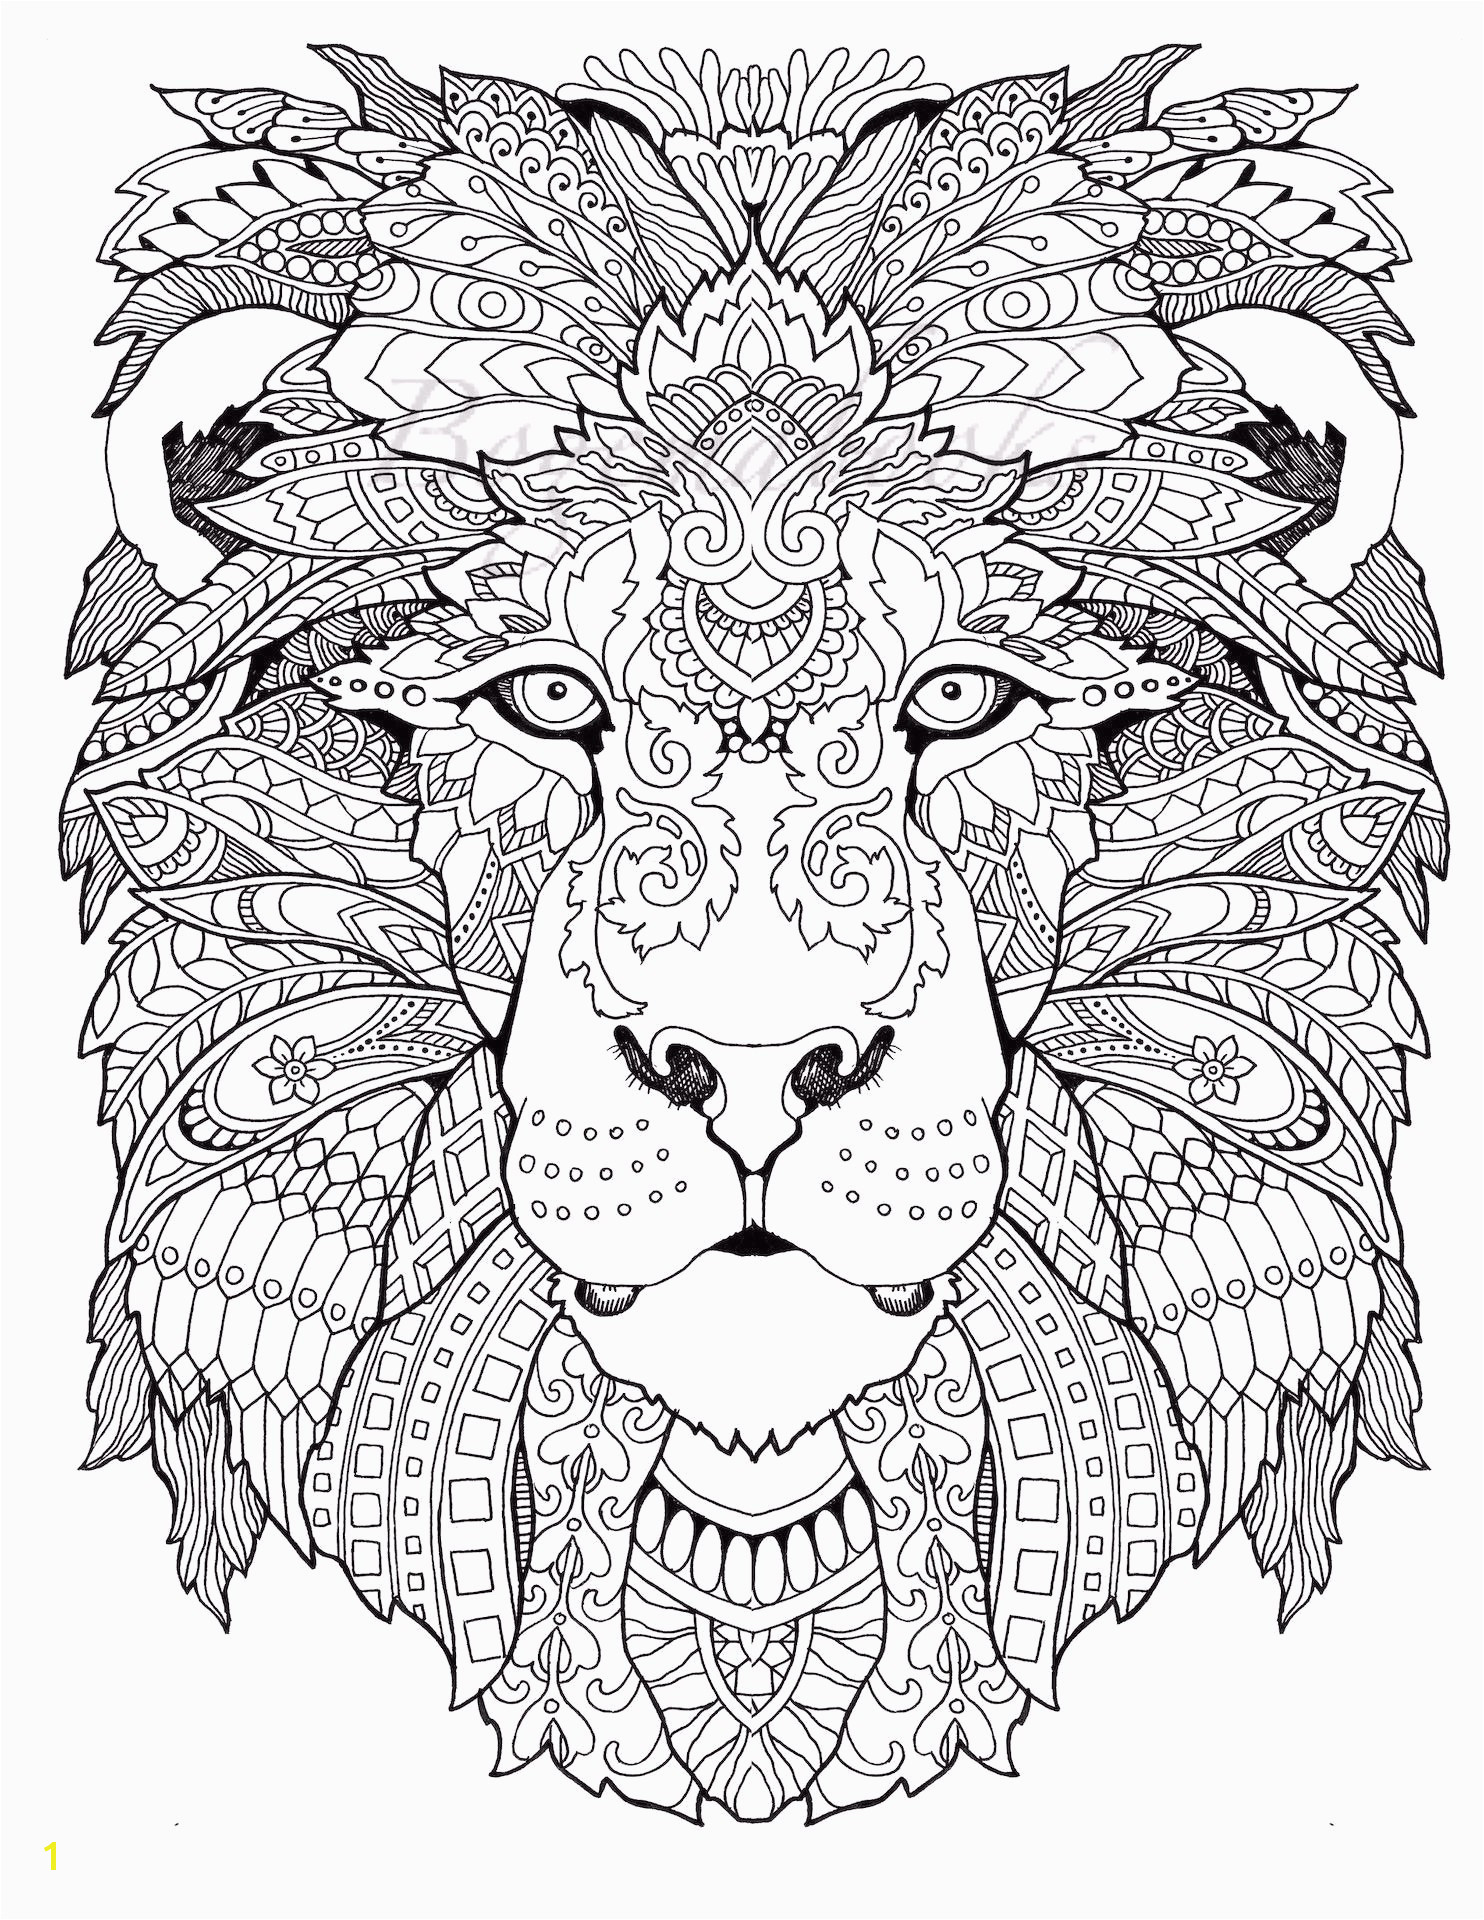 Book Colouring Page Printable Color Pages for Adults Awesome Fall Coloring Pages 0d Page